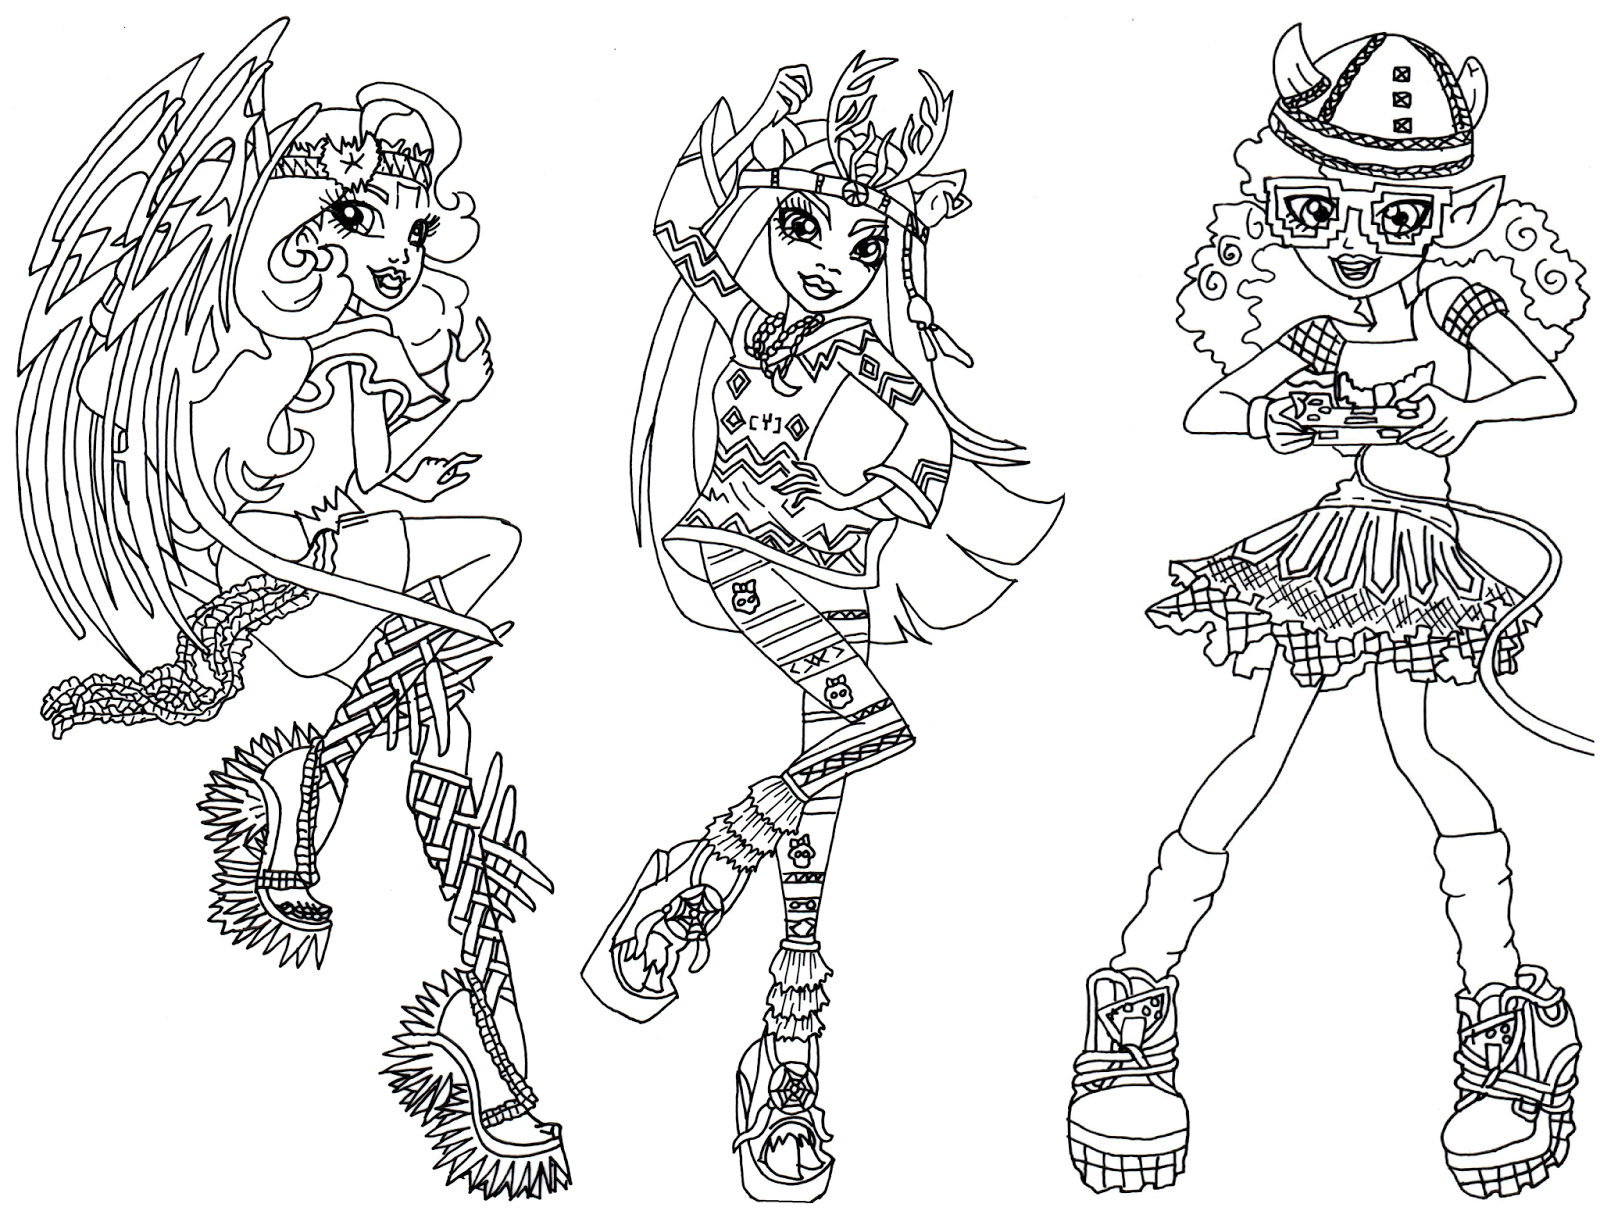 Boo York Brand Boo Students Monster High Coloring Page Png 1 600 1 211 Pixels Monster High Online Drawing Drawing Games